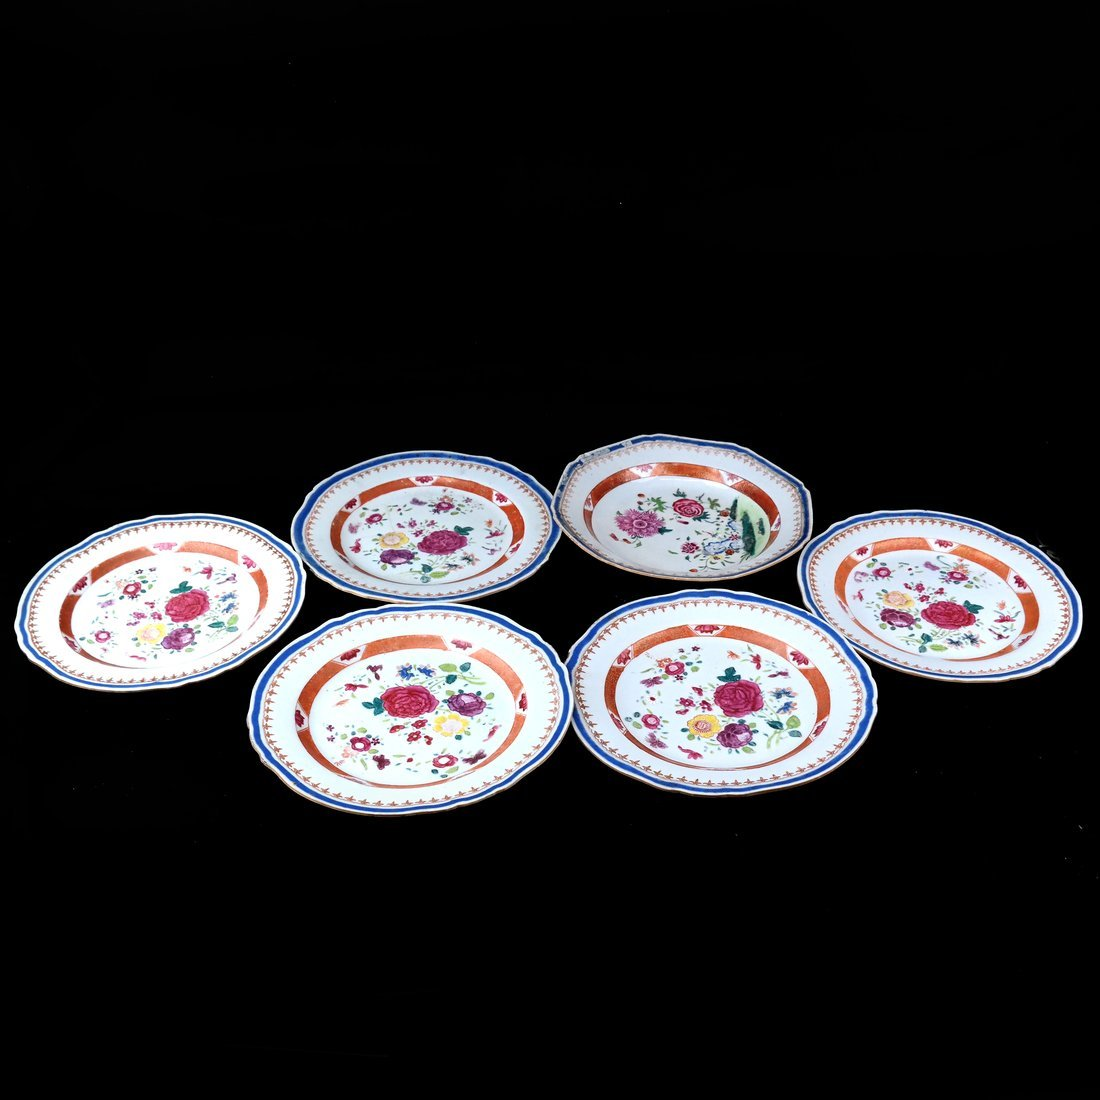 6 Chinese Export Porcelain Dishes